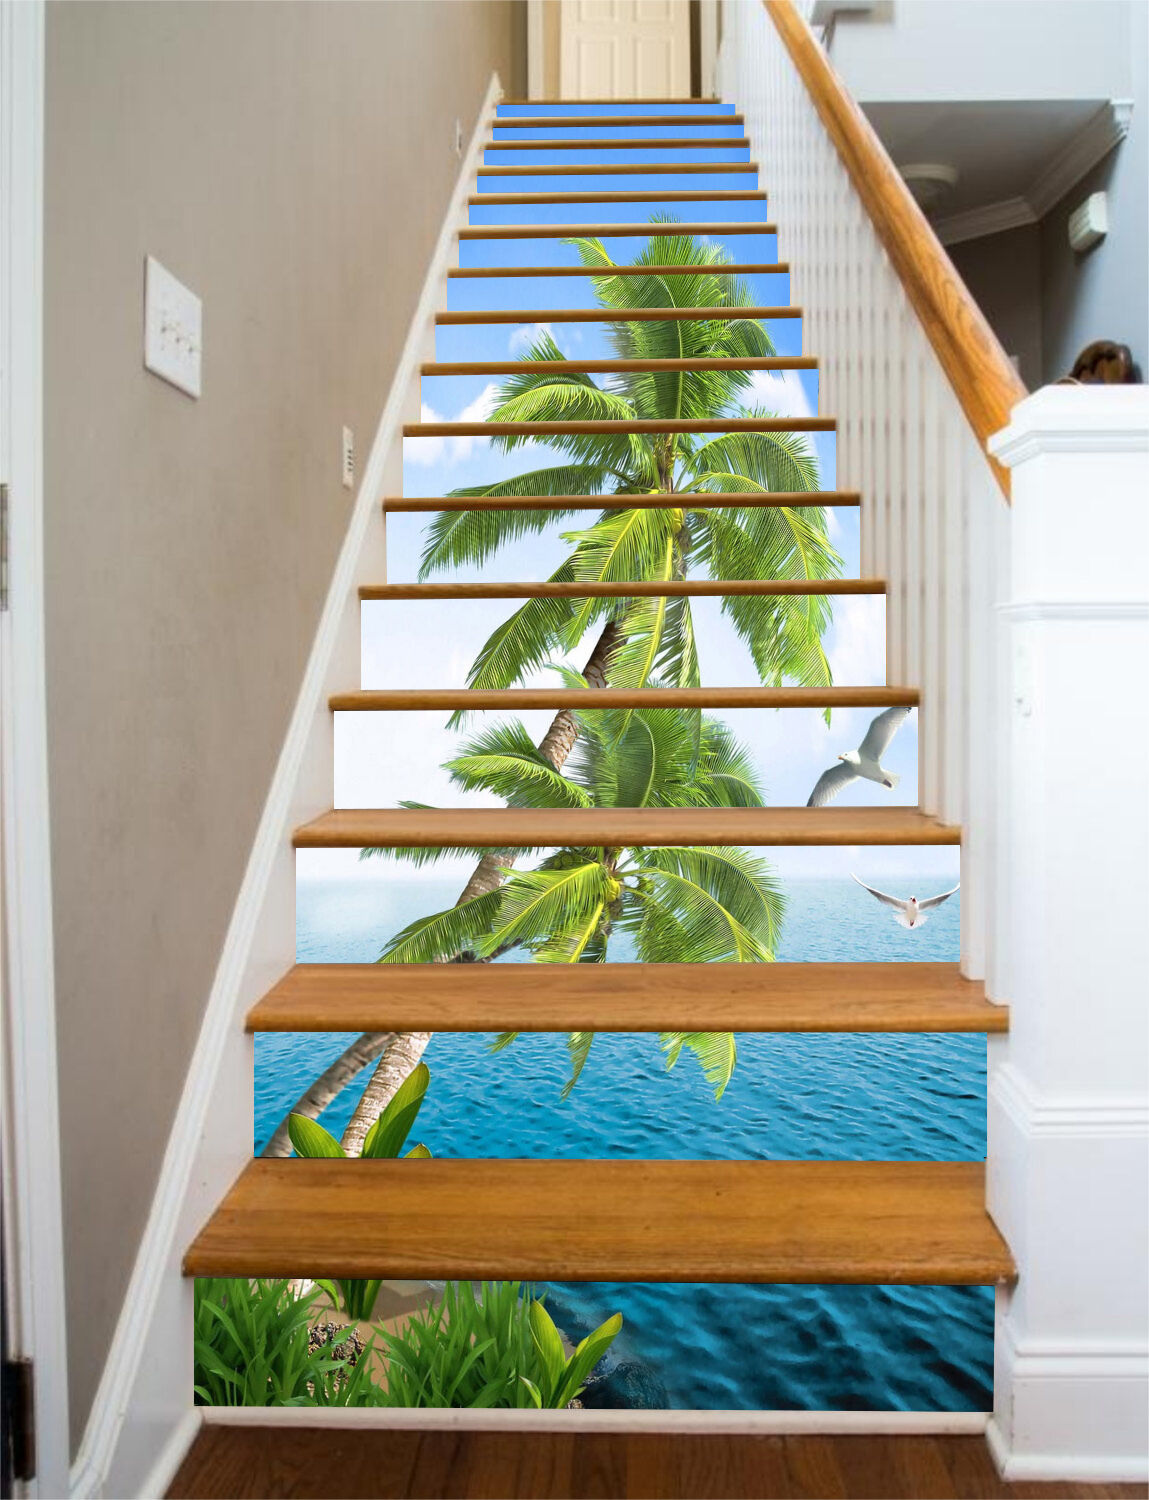 3D Coco sky 2 Stair Risers Decoration Photo Mural Vinyl Decal Wallpaper UK